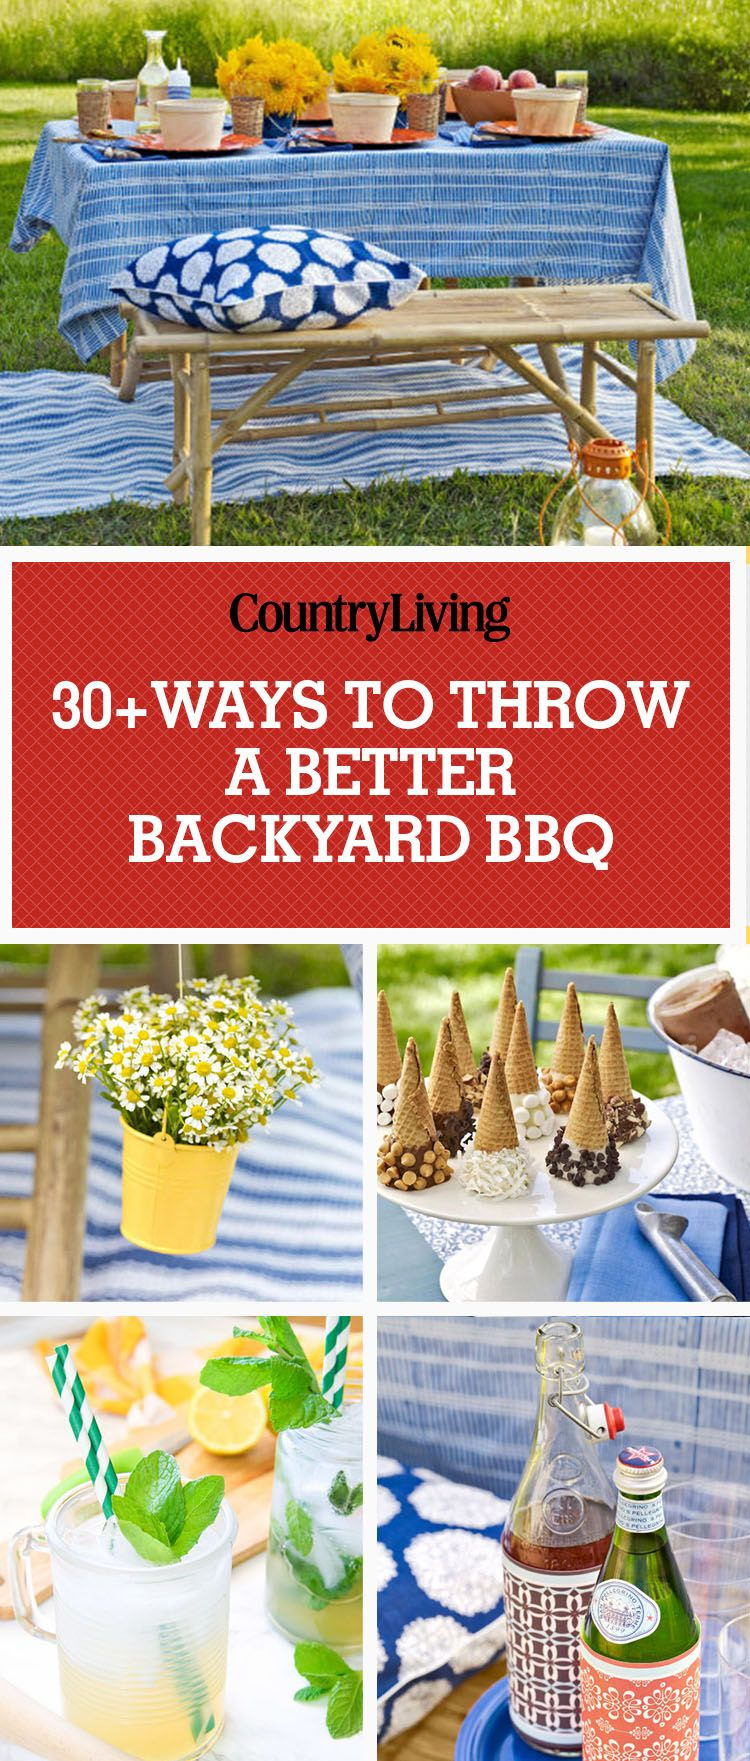 Best Backyard BBQ Party Ideas Summer Party Tips - Summer backyard party ideas